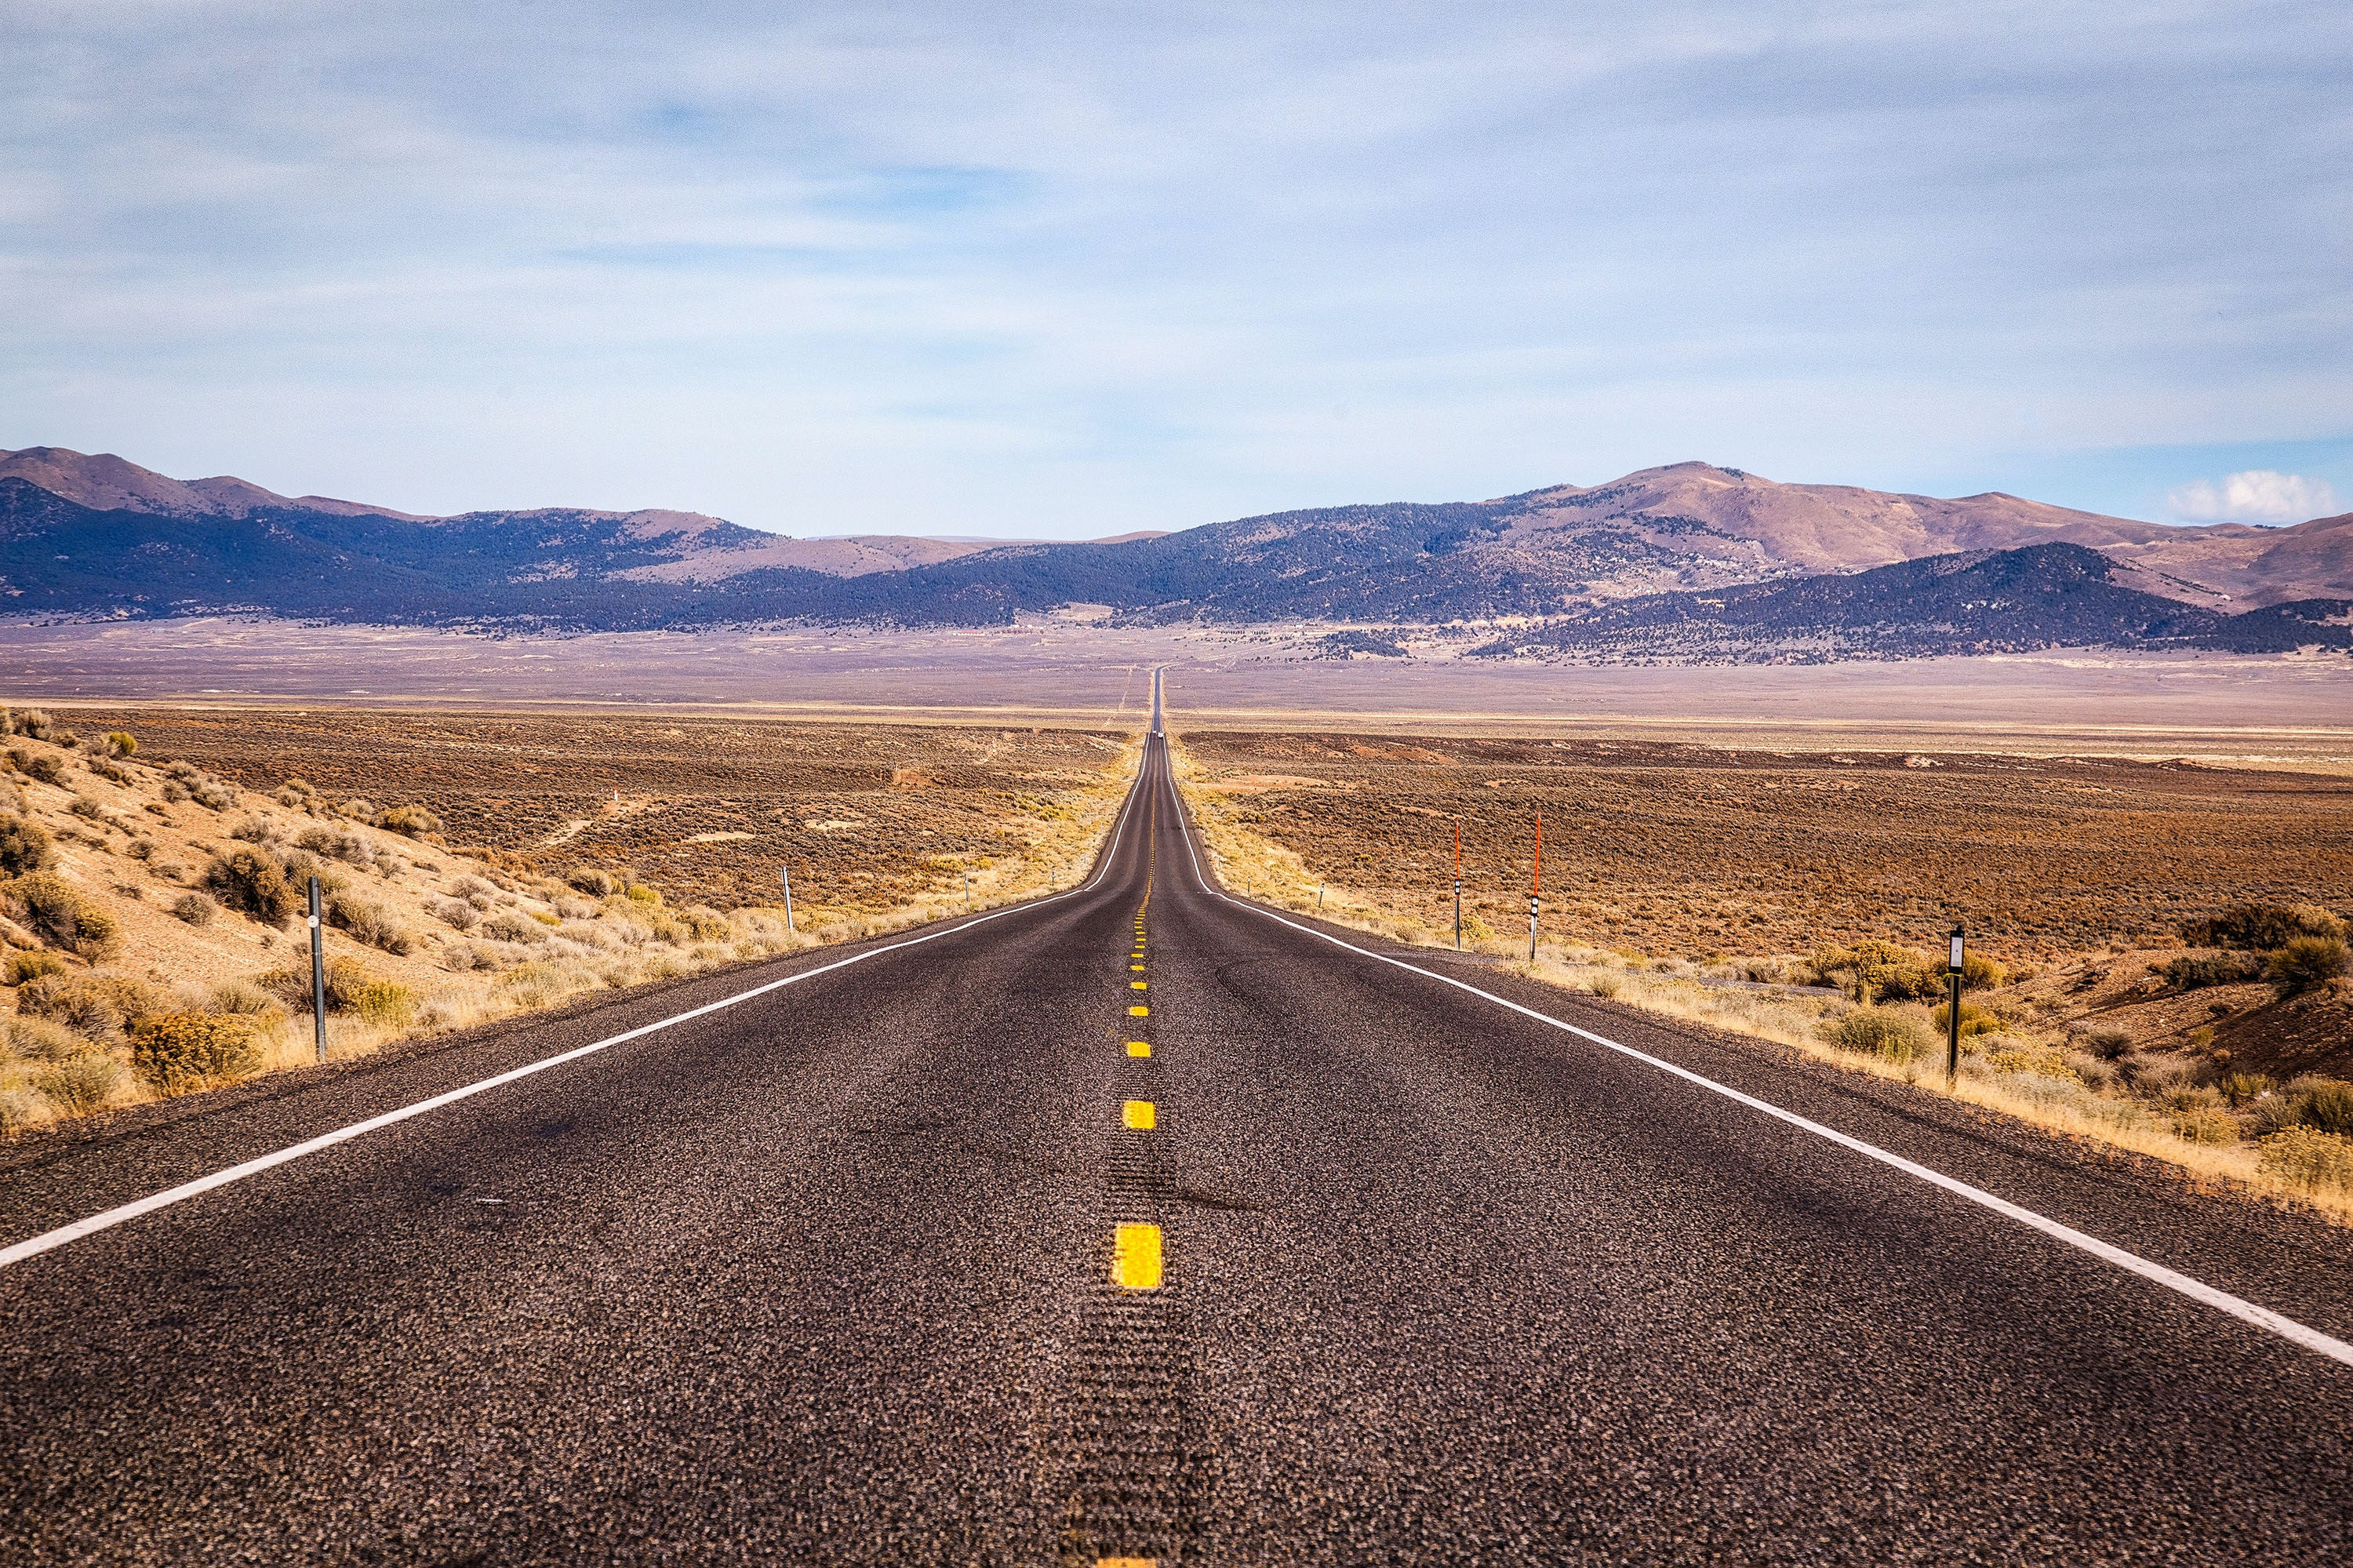 Highway 50, known as the Loneliest Road in America, traverses Nevada's Great Basin.